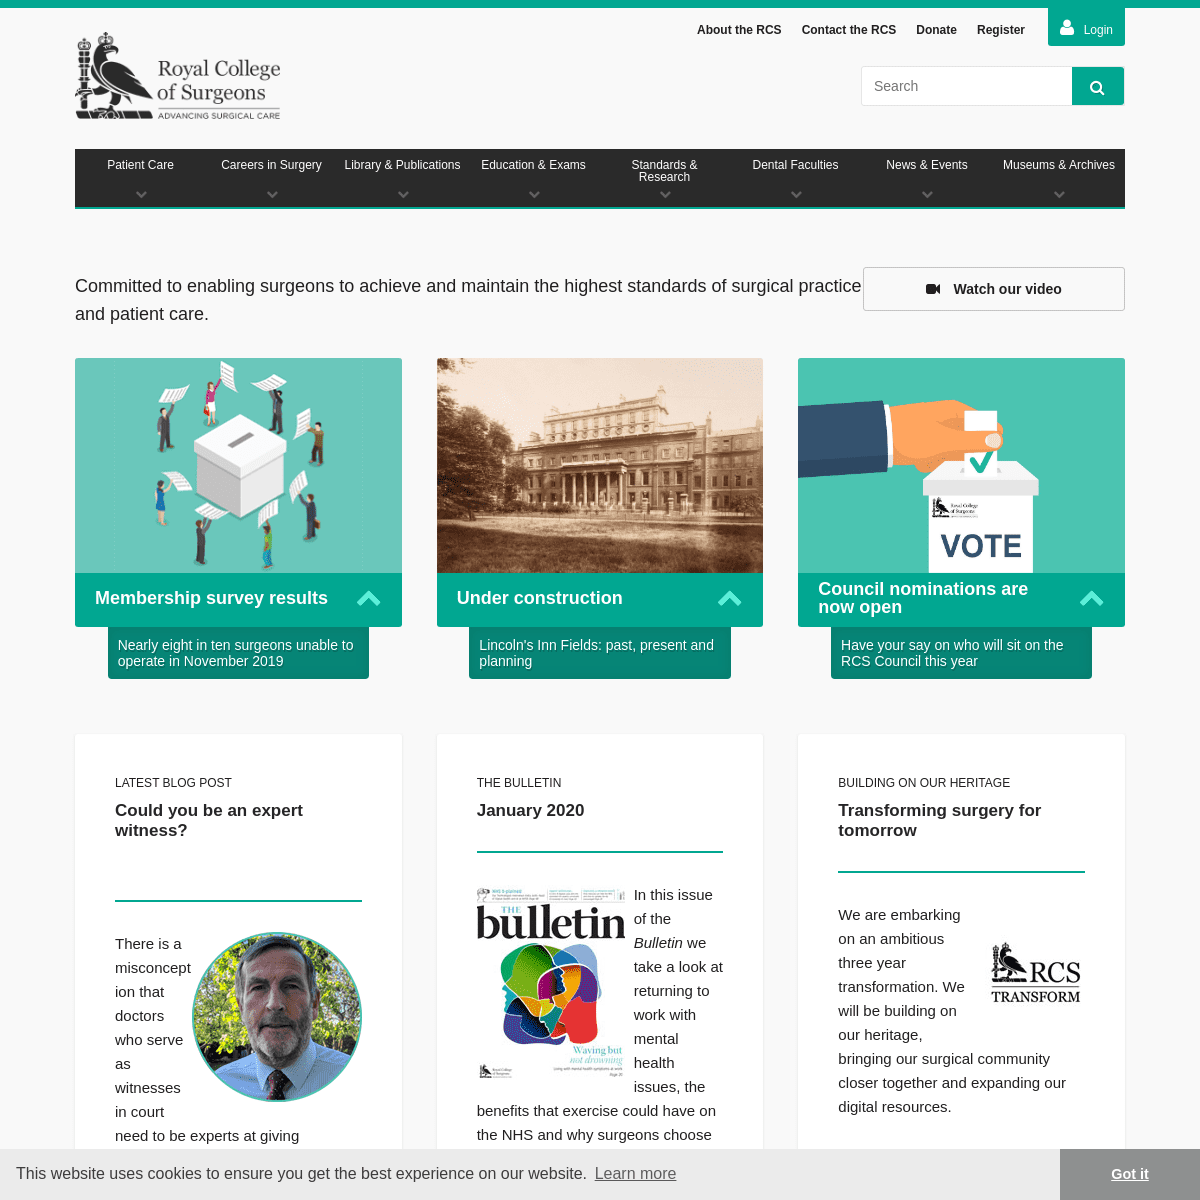 ArchiveBay.com - rcseng.ac.uk - The Royal College of Surgeons- committed to enabling surgeons to achieve and maintain the highest standards of surgical practice